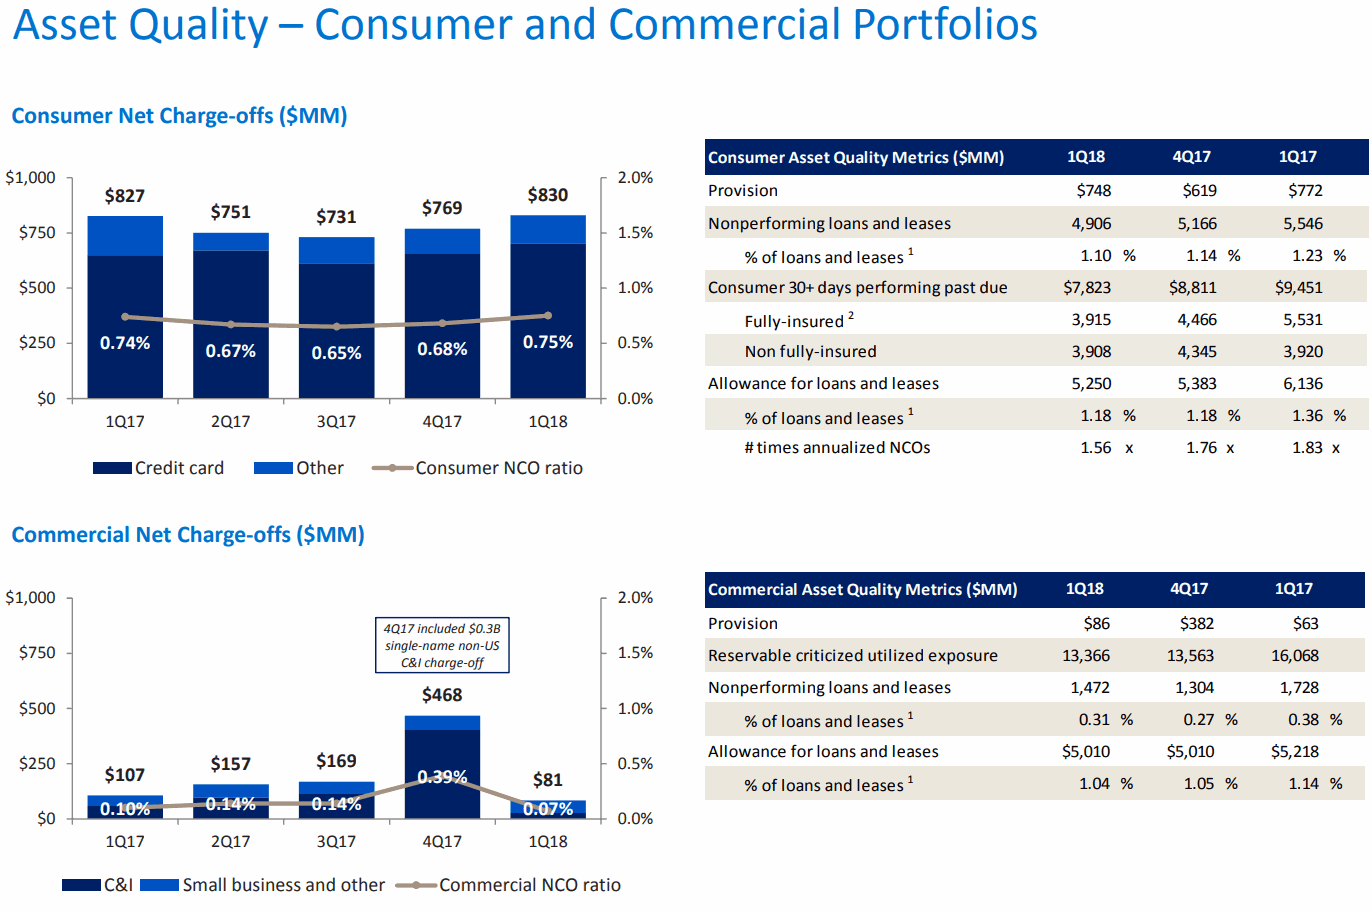 Bank-of-America-Asset-Quality-Consumer-and-Commercial-Portfolios